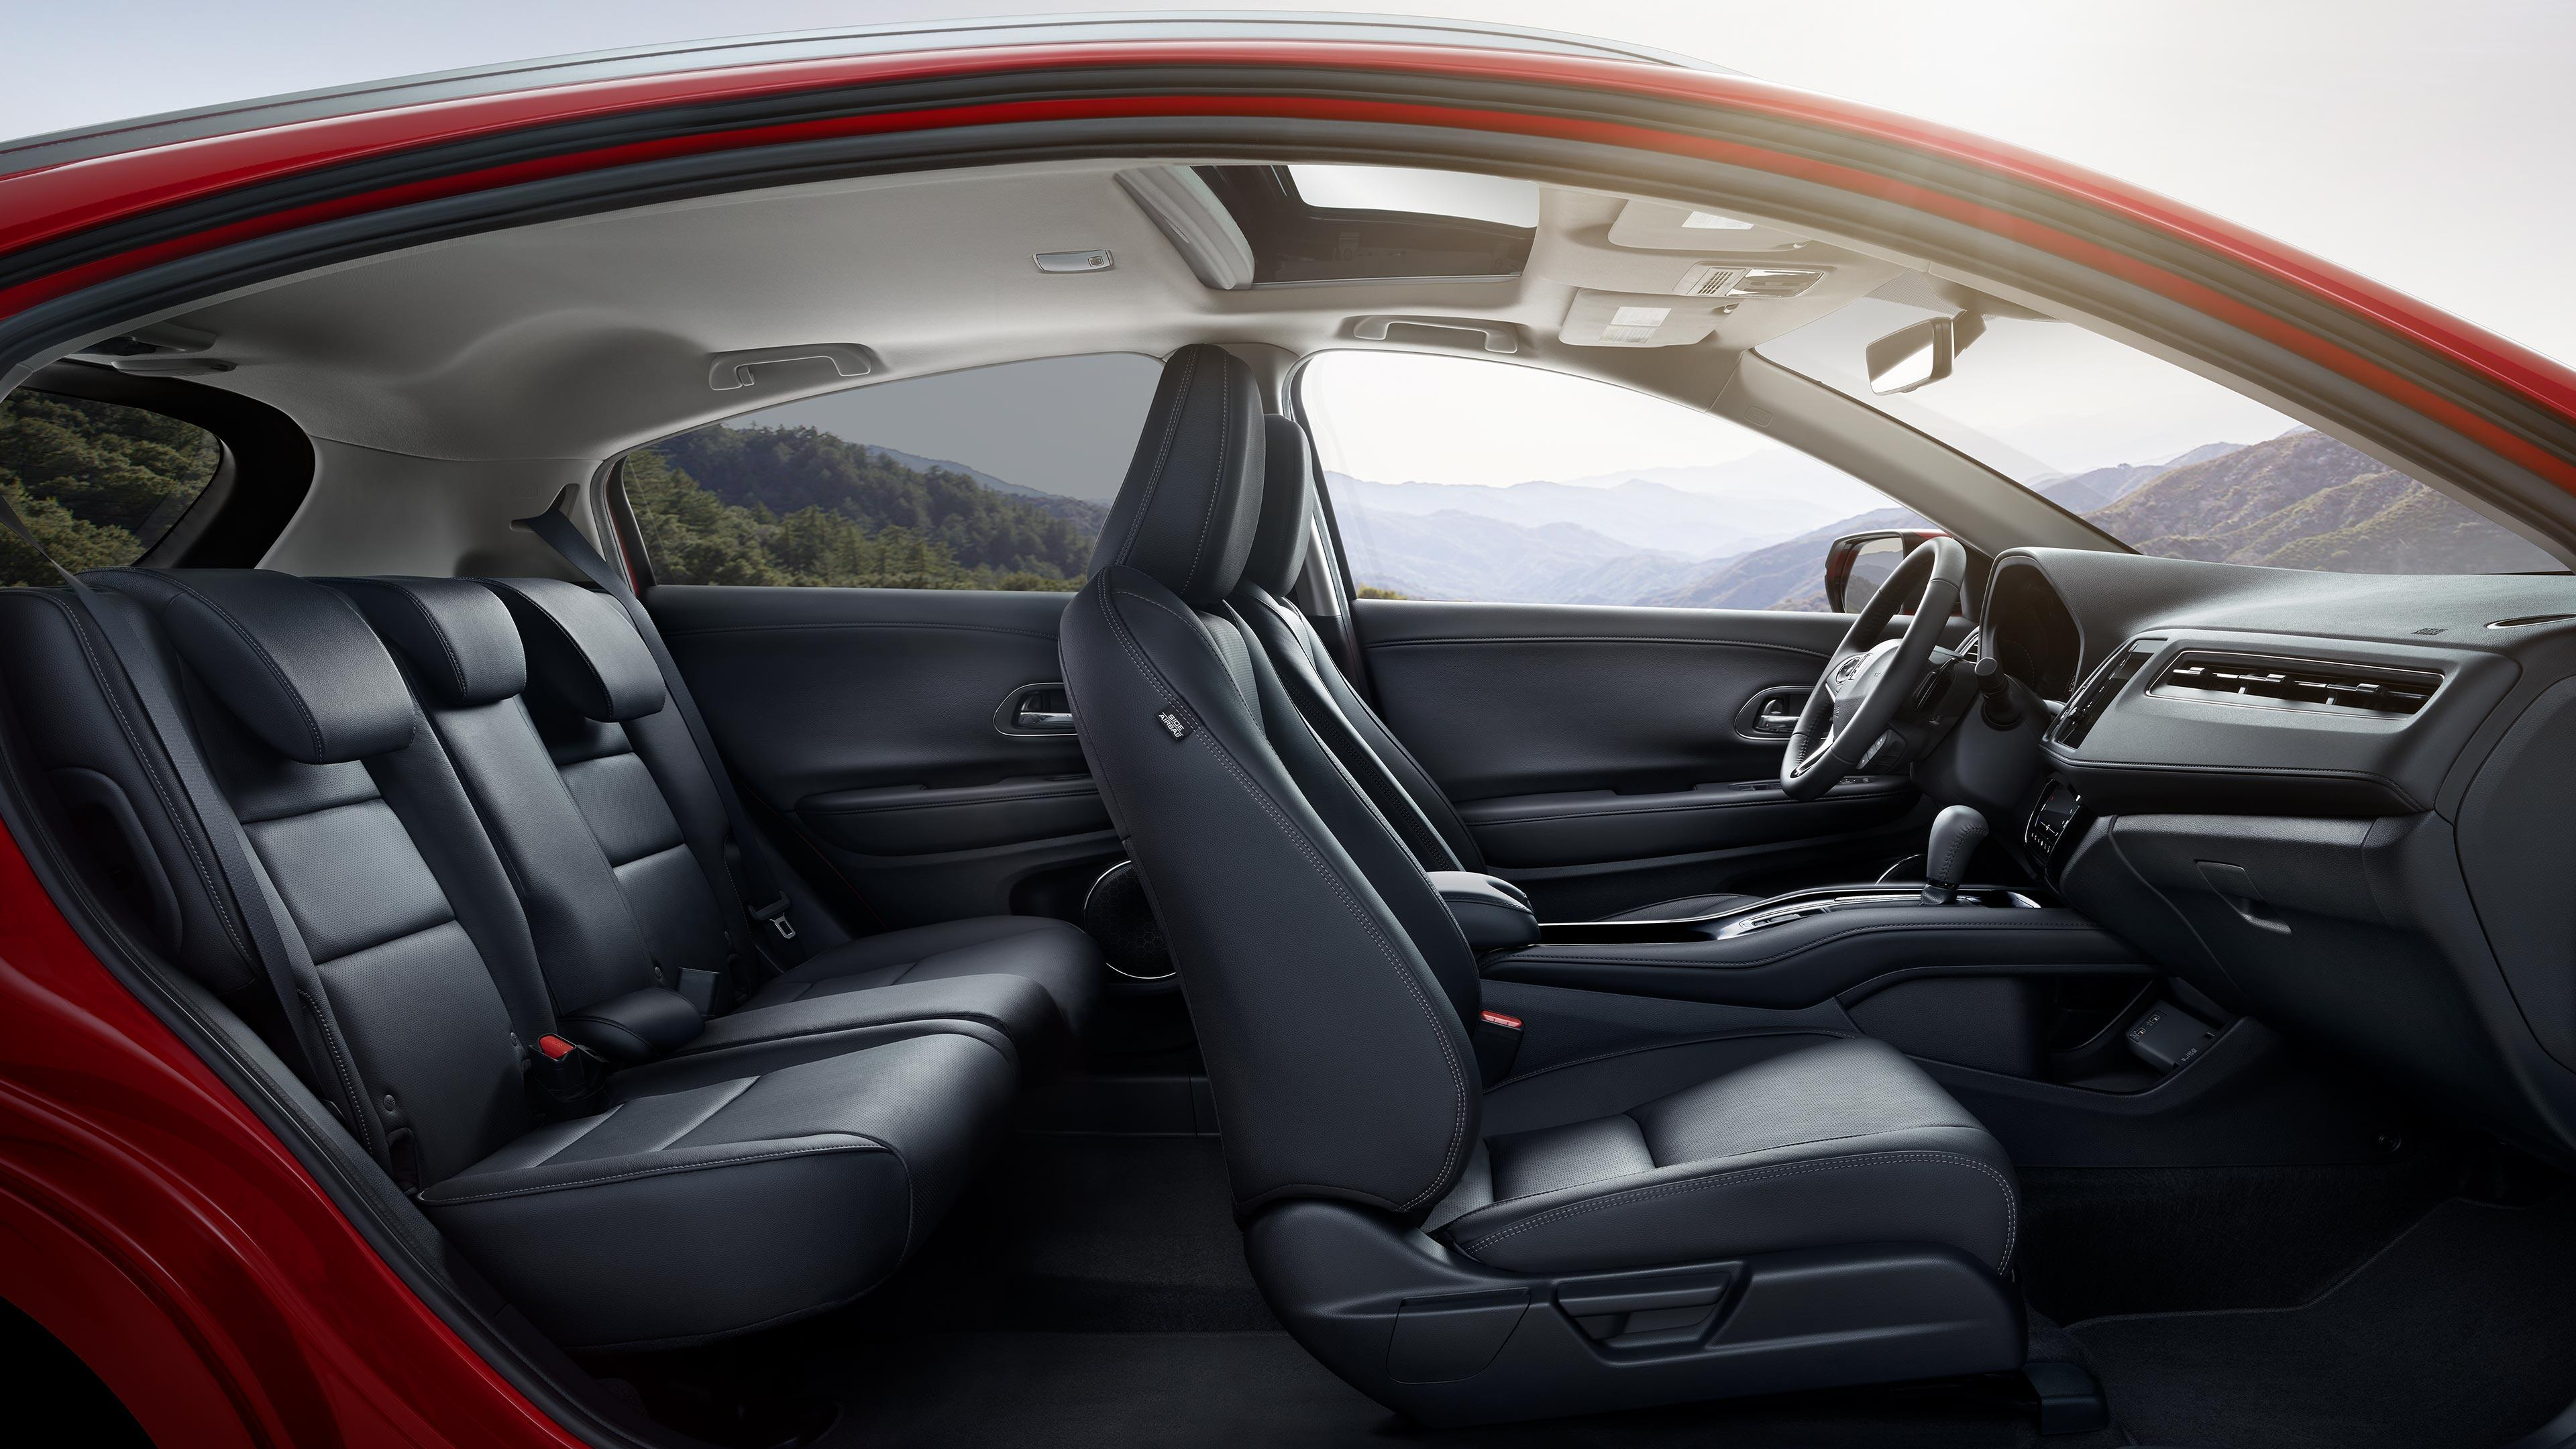 2019 Honda HRV Interior Side View